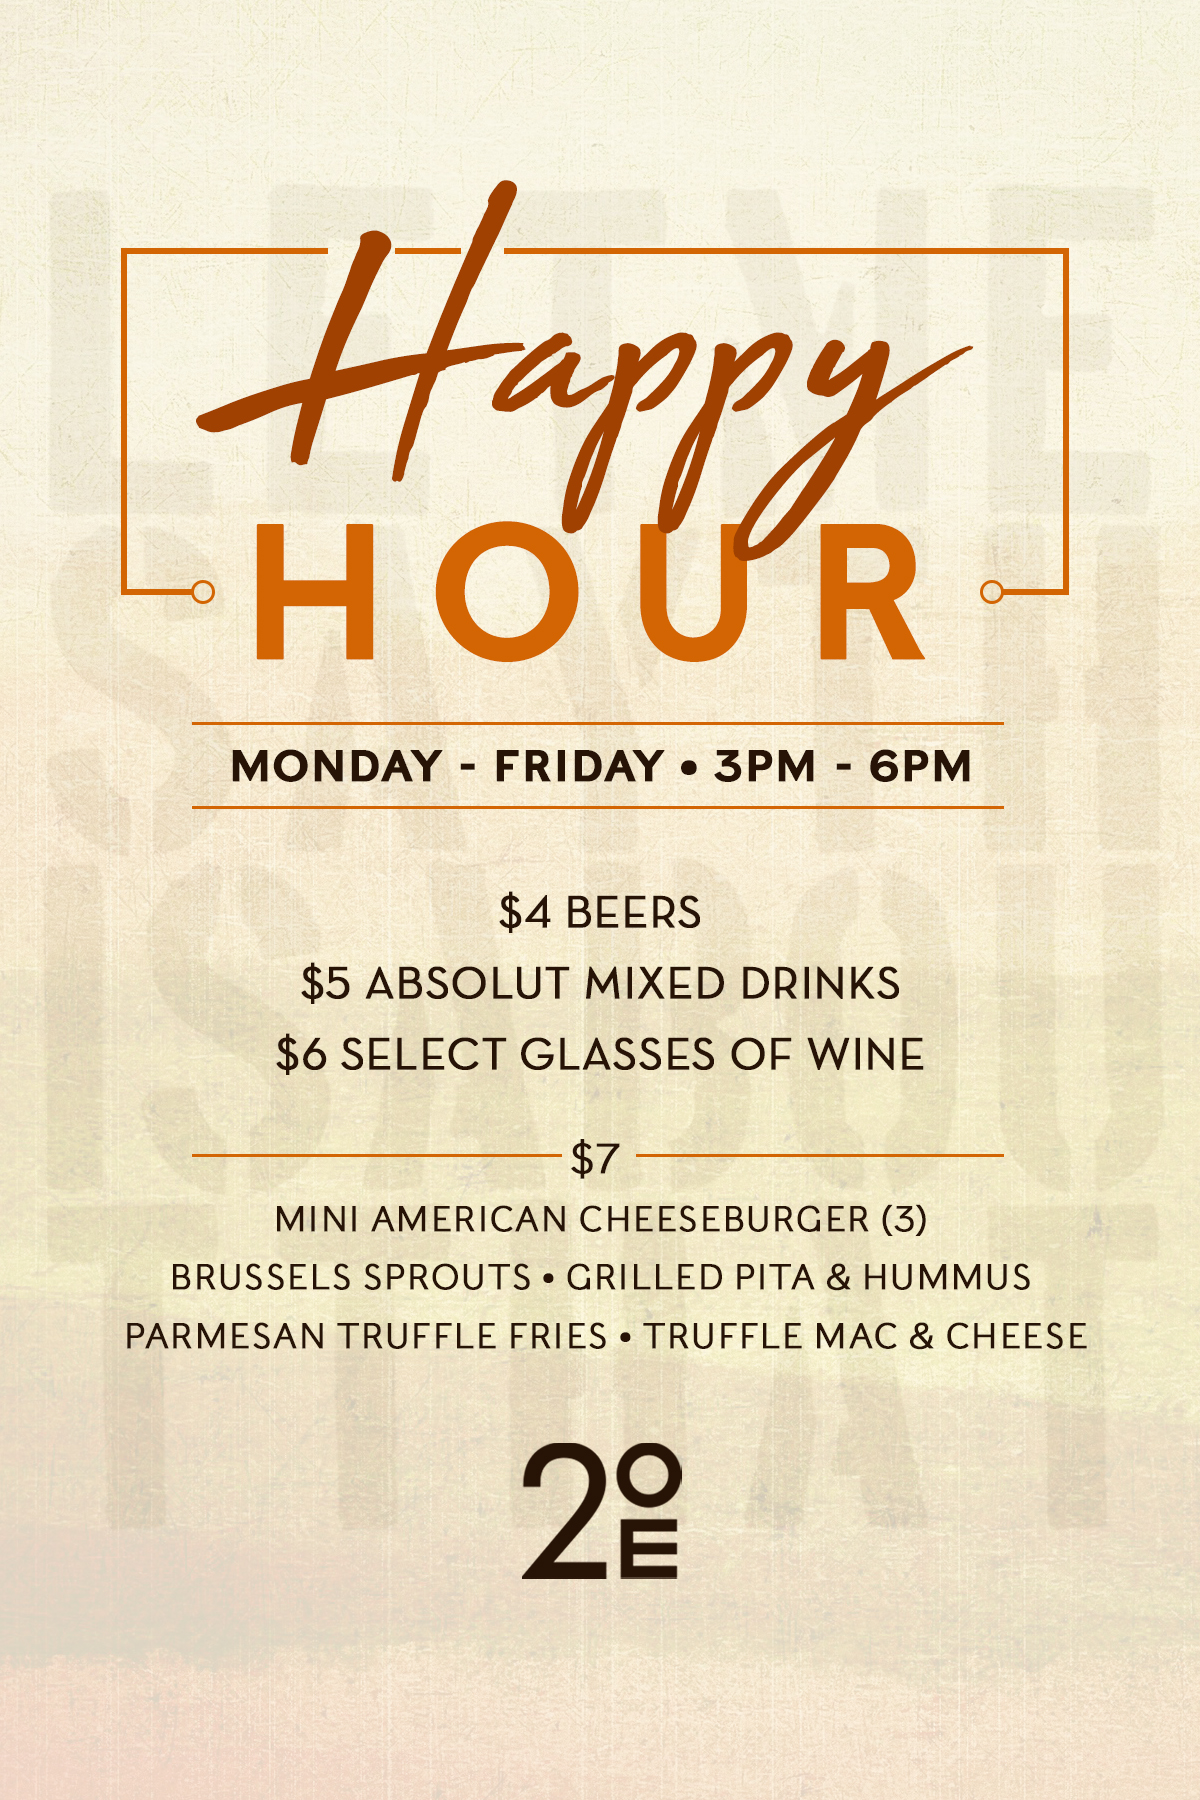 Join us for our new Happy Hour Monday - Friday from 3pm - 6pm. -